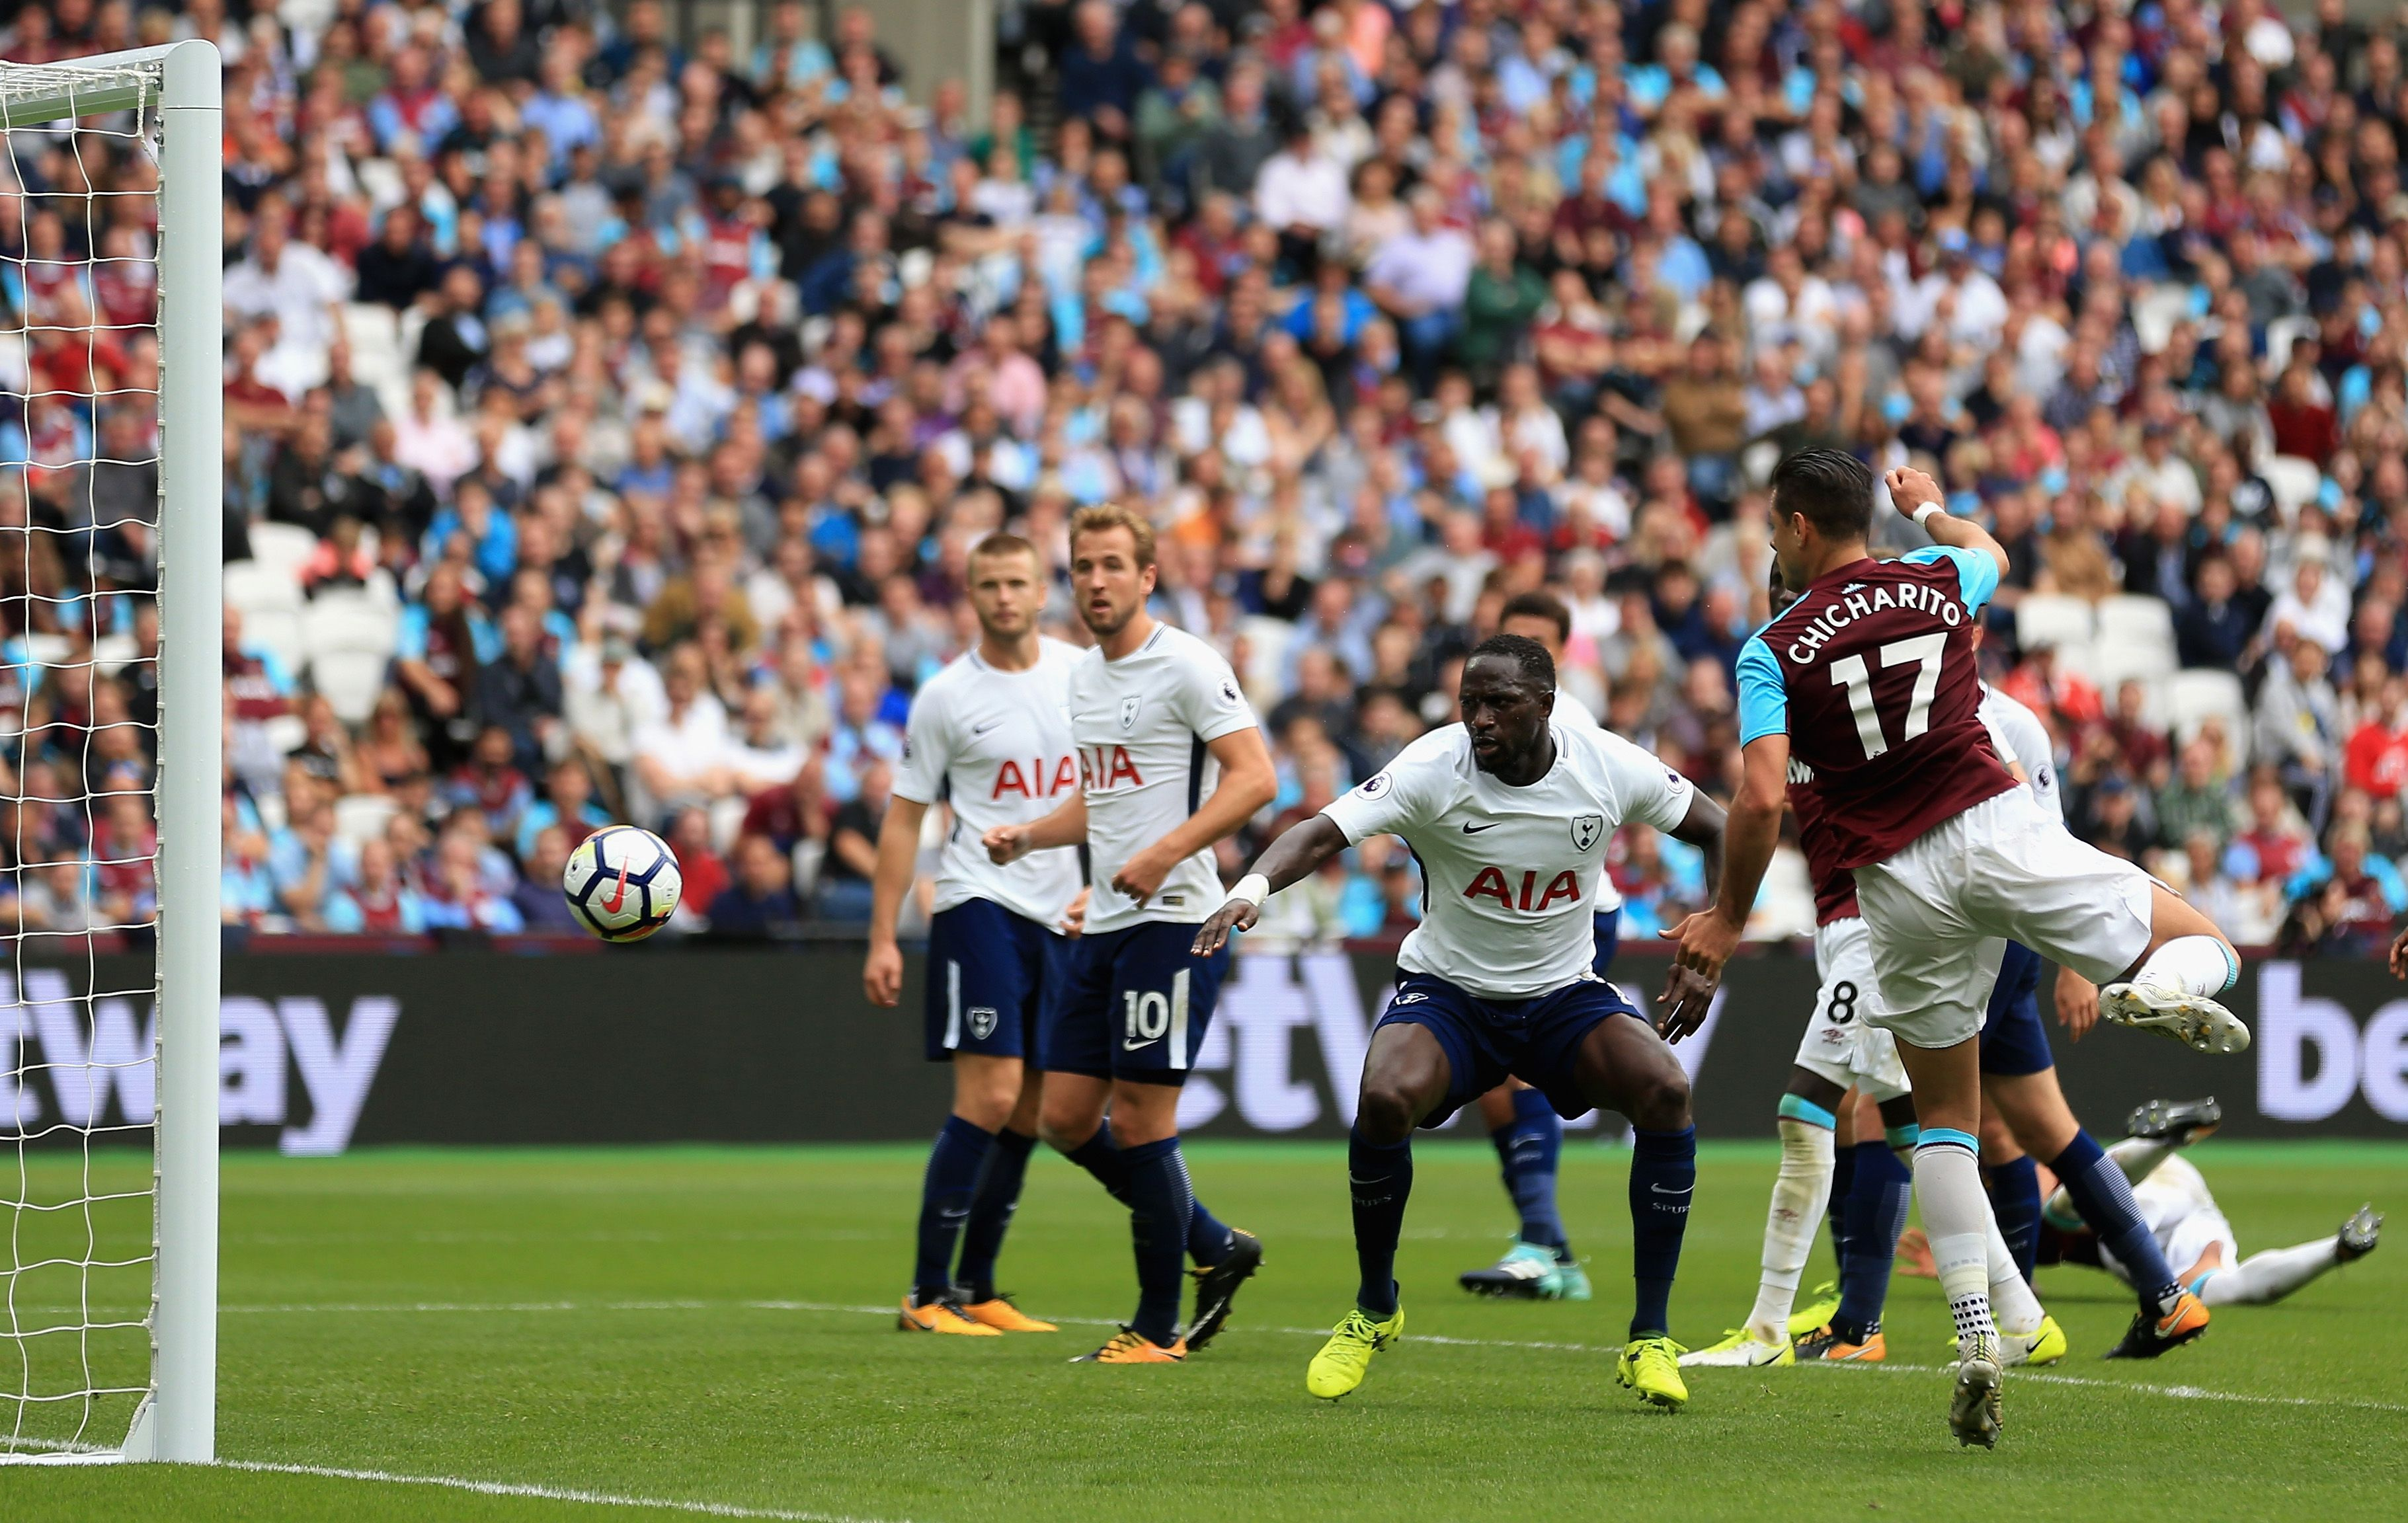 Watch Online Tottenham Vs West Ham Live Streaming For Free The Best Place To Find A Live Stream To Watch The Match Between Tottenham And